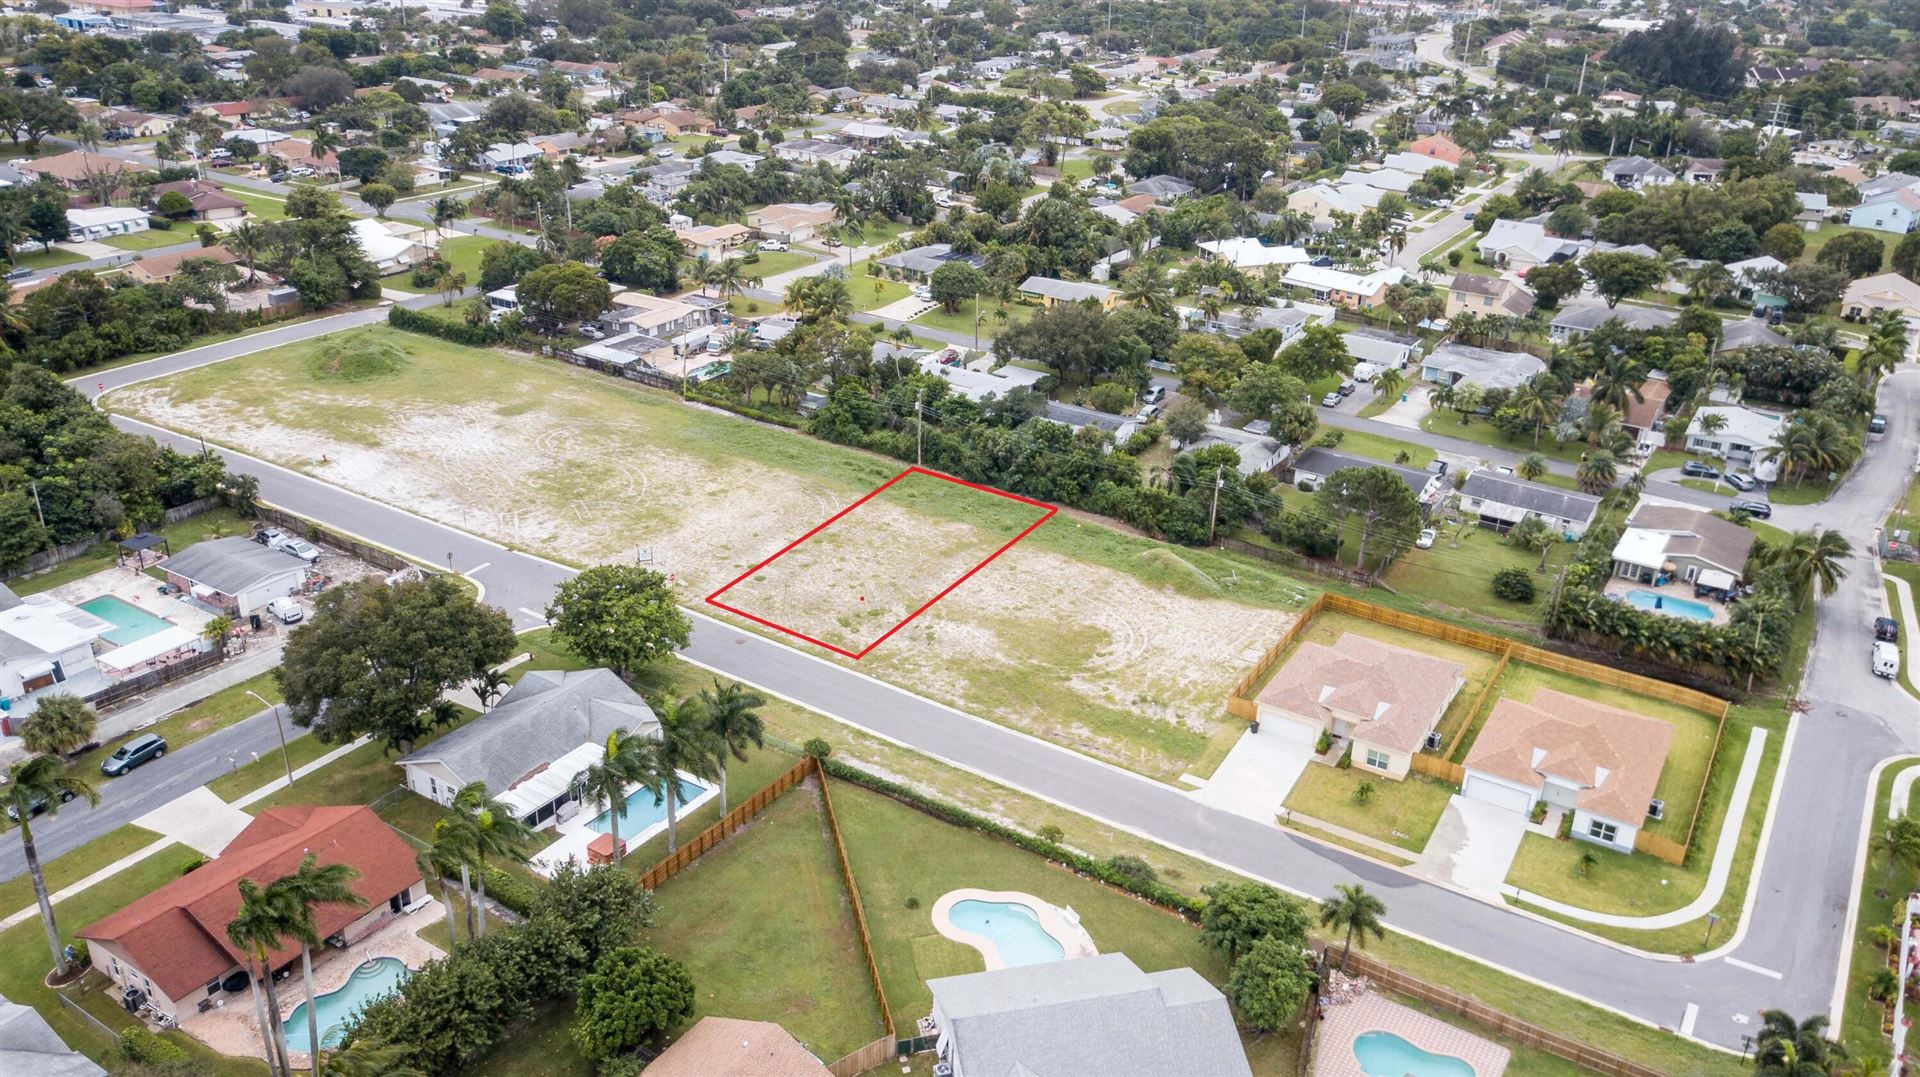 902 NW 9th Avenue, Boynton Beach, FL 33426 - MLS#: RX-10712302